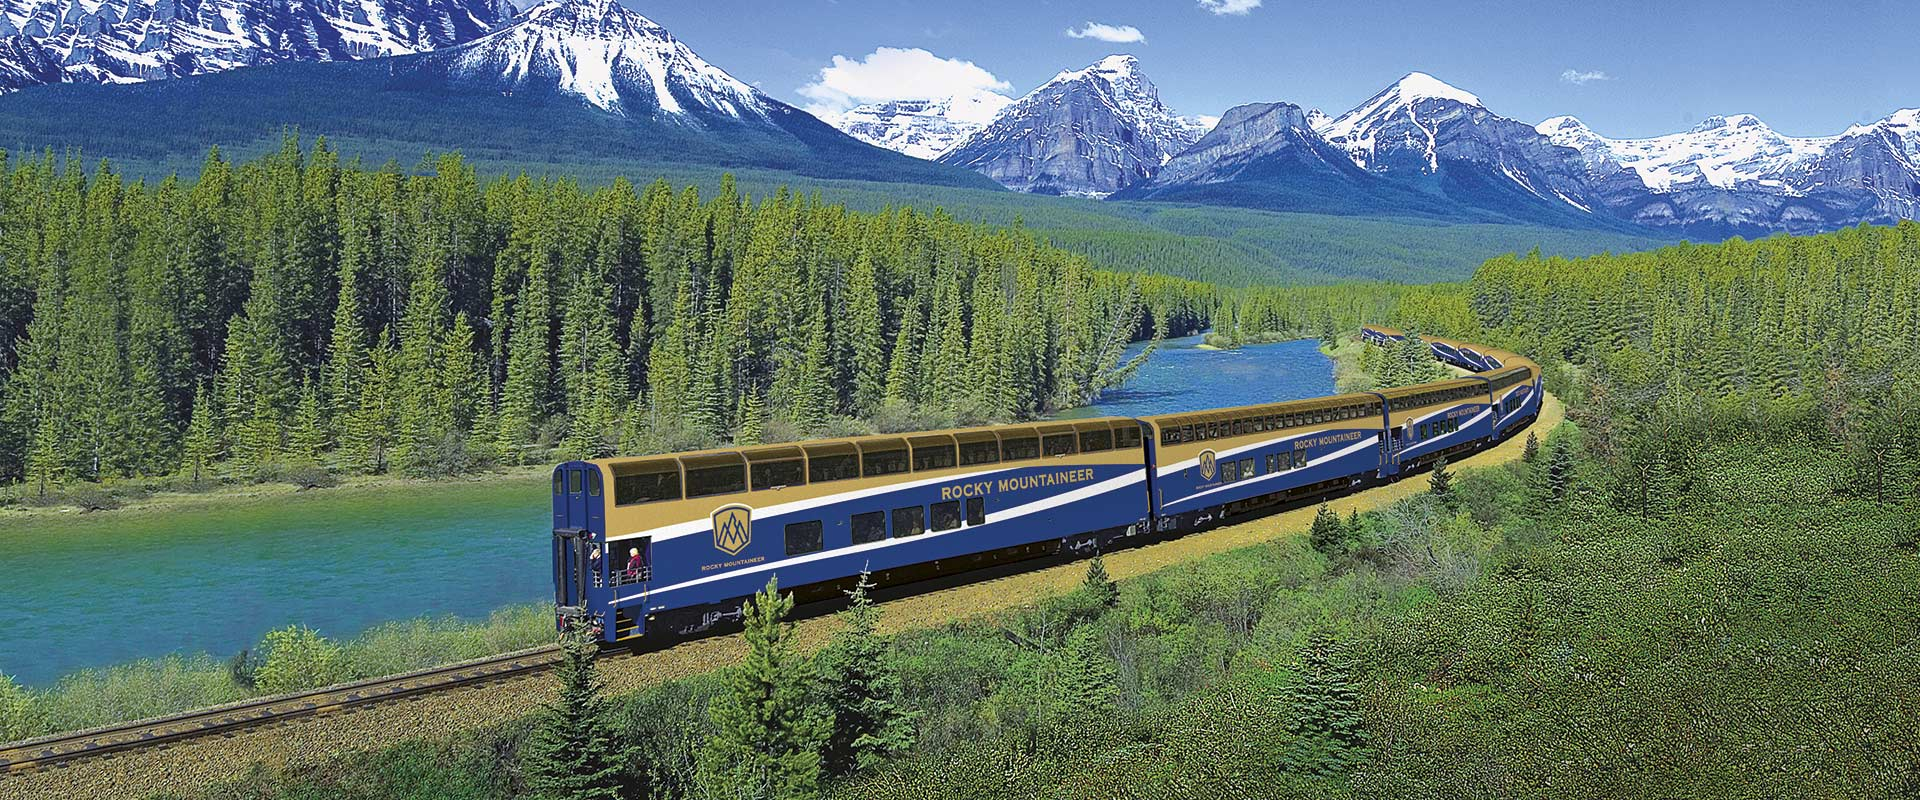 37 Tours Grand Tour Of Canada & Alaska With Boston 37 Days By